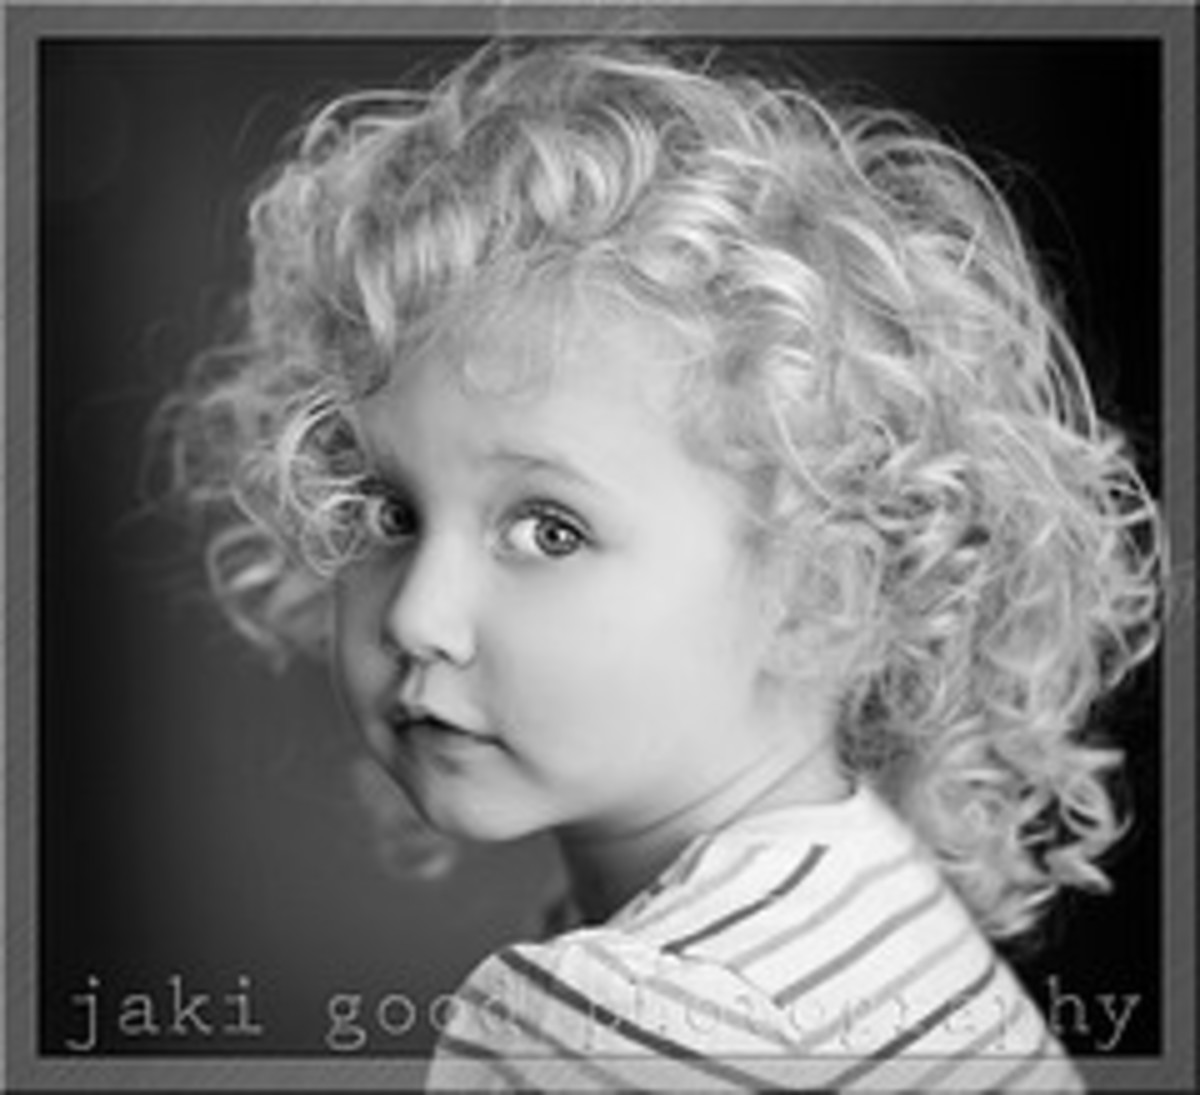 Child with natural blonde hair photos from flickr